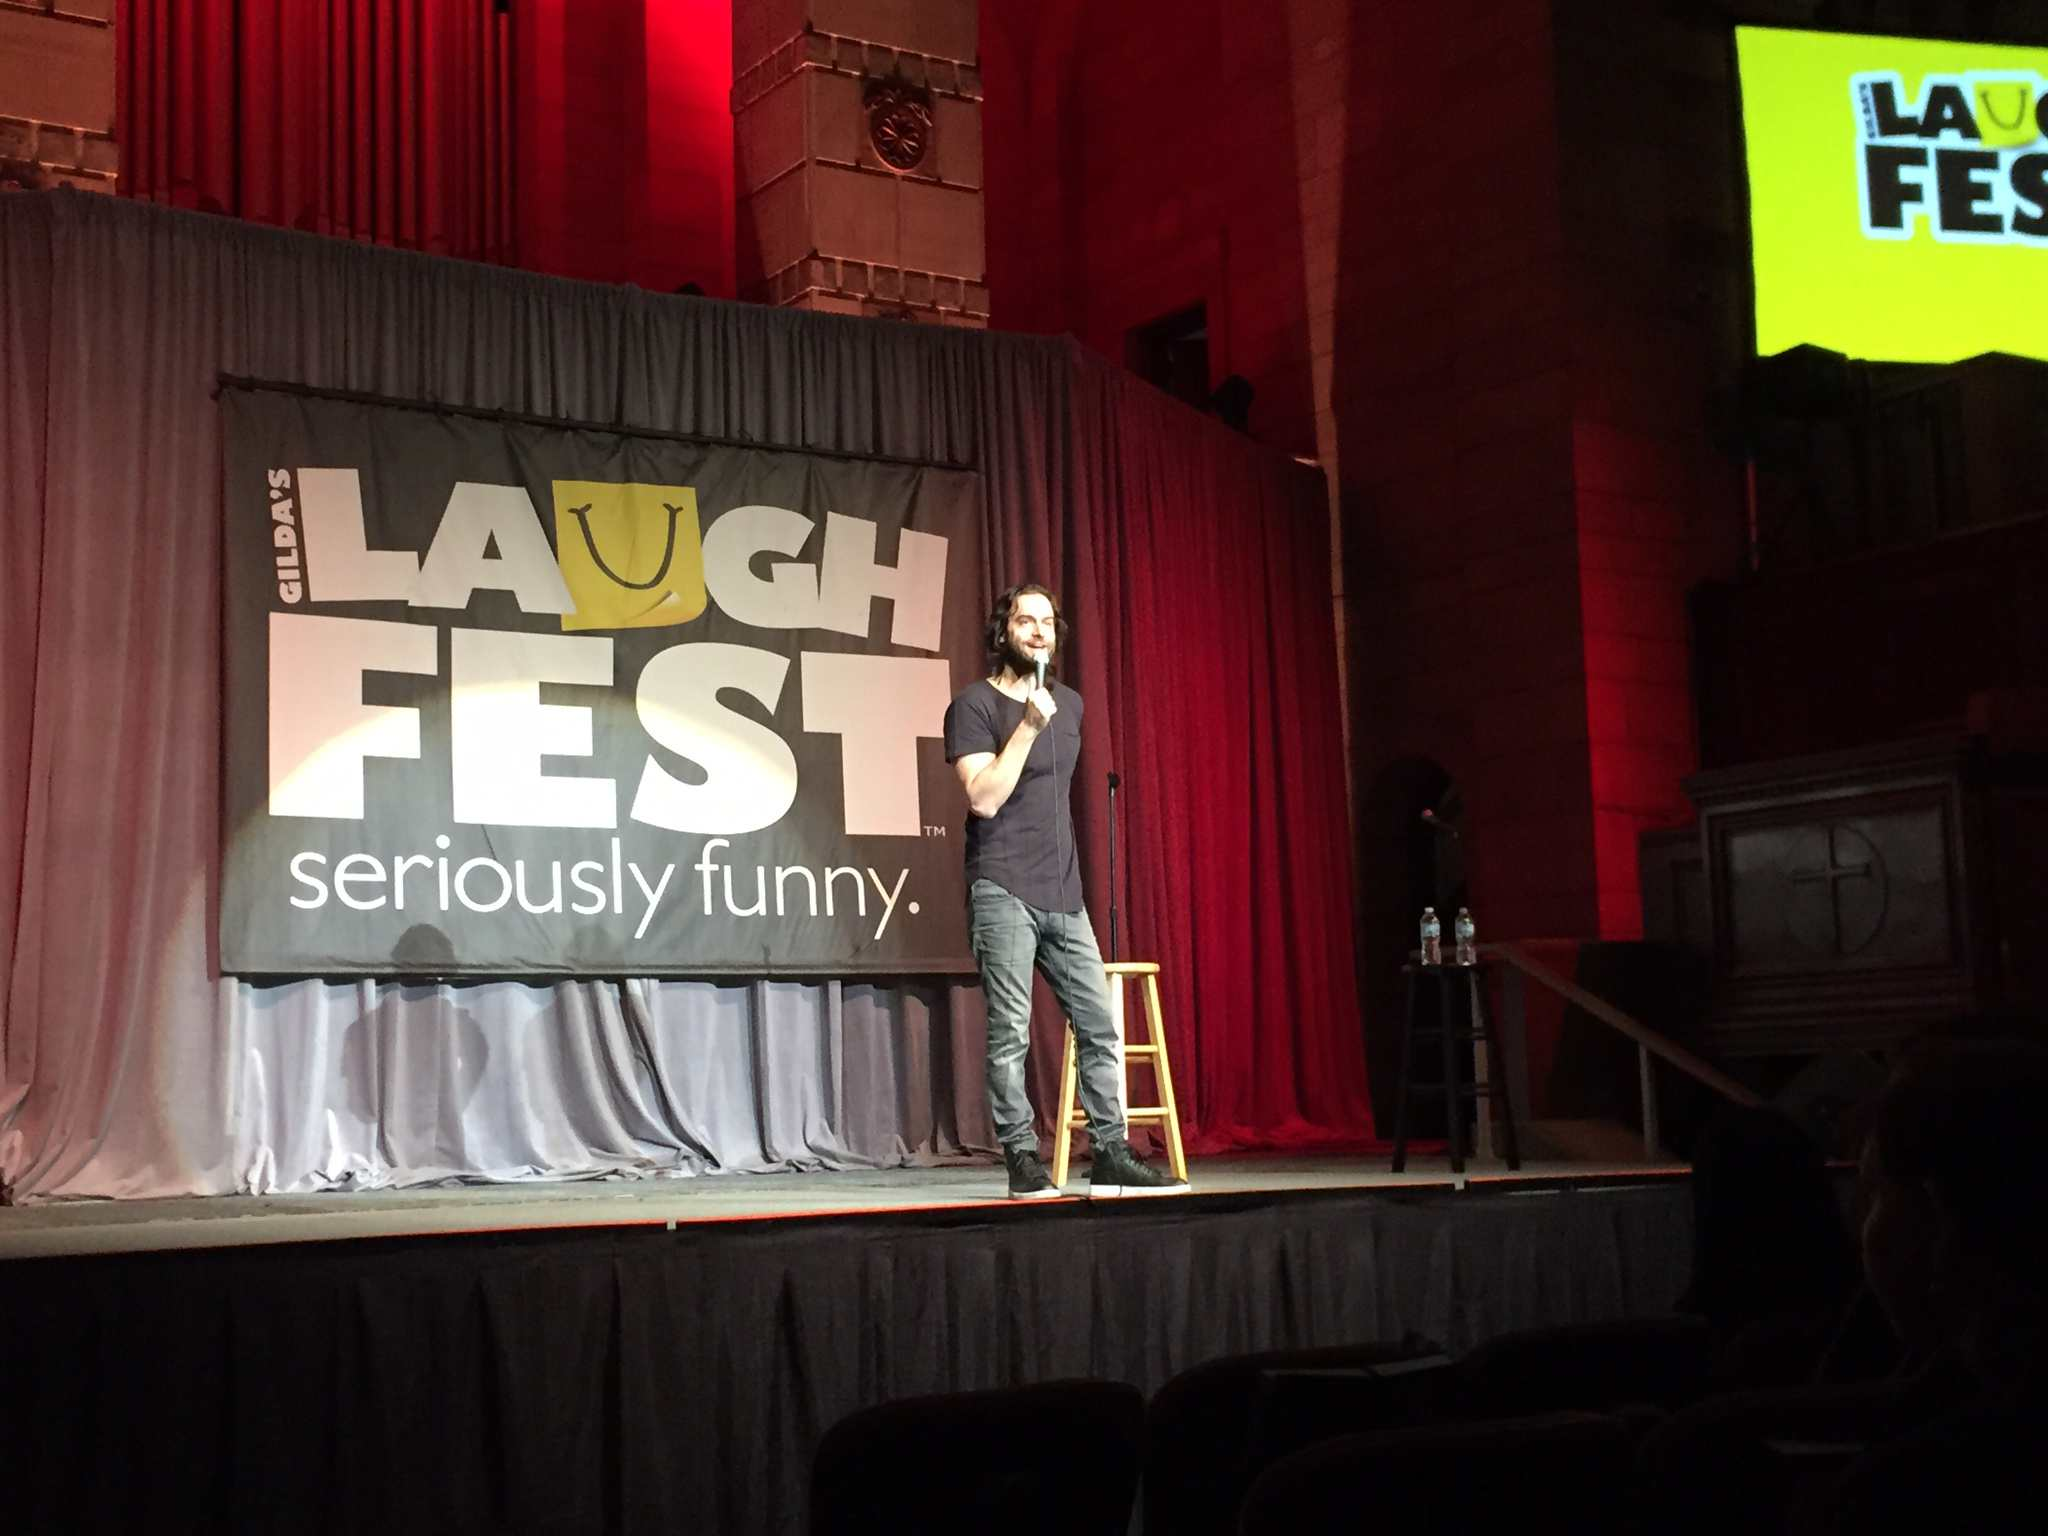 Laughfest.